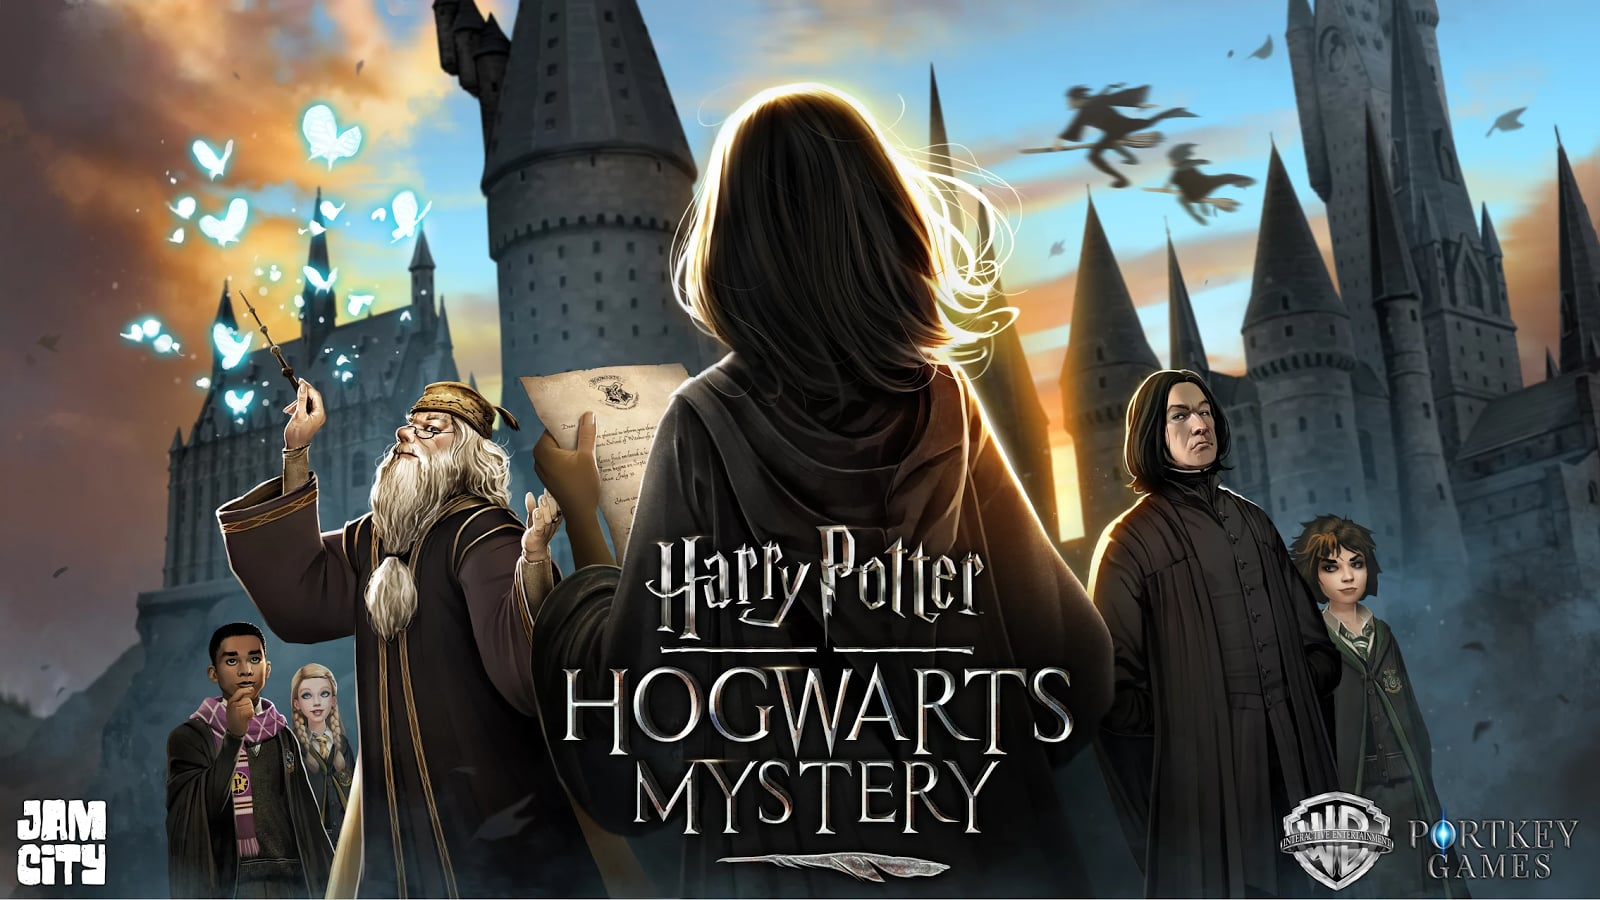 Here's a first look at the new Harry Potter mobile game